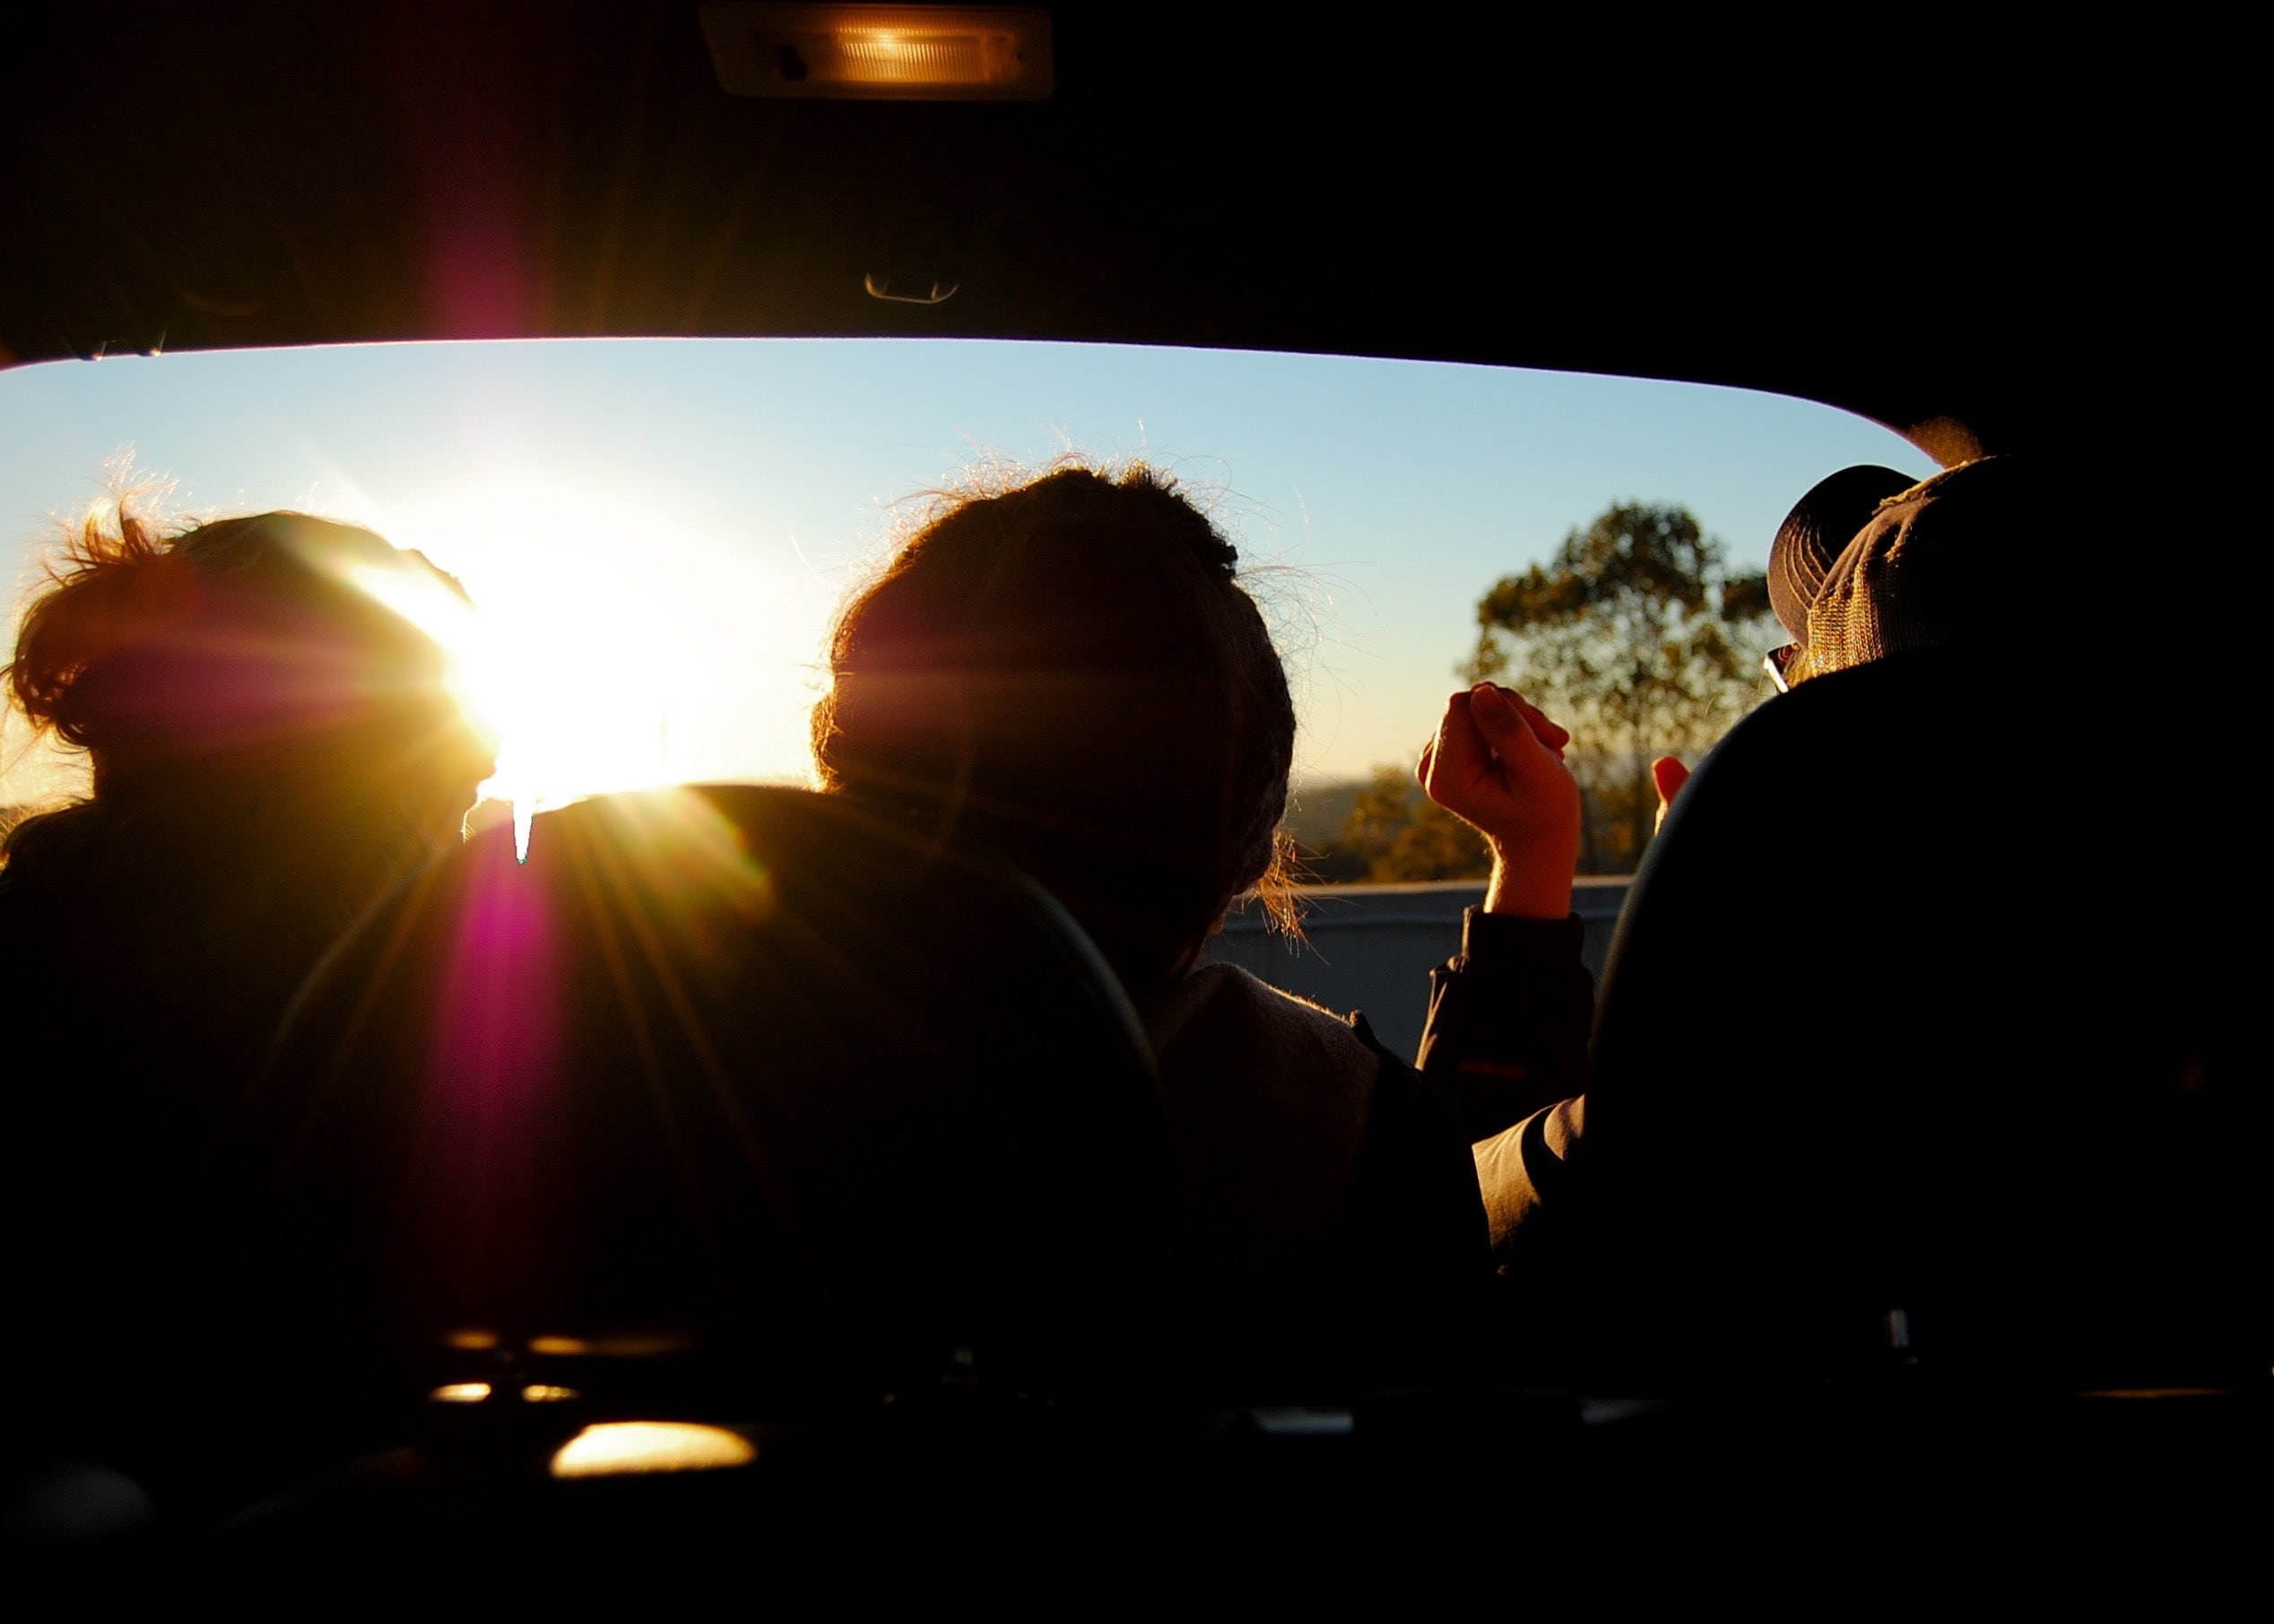 silhouette of three person inside car